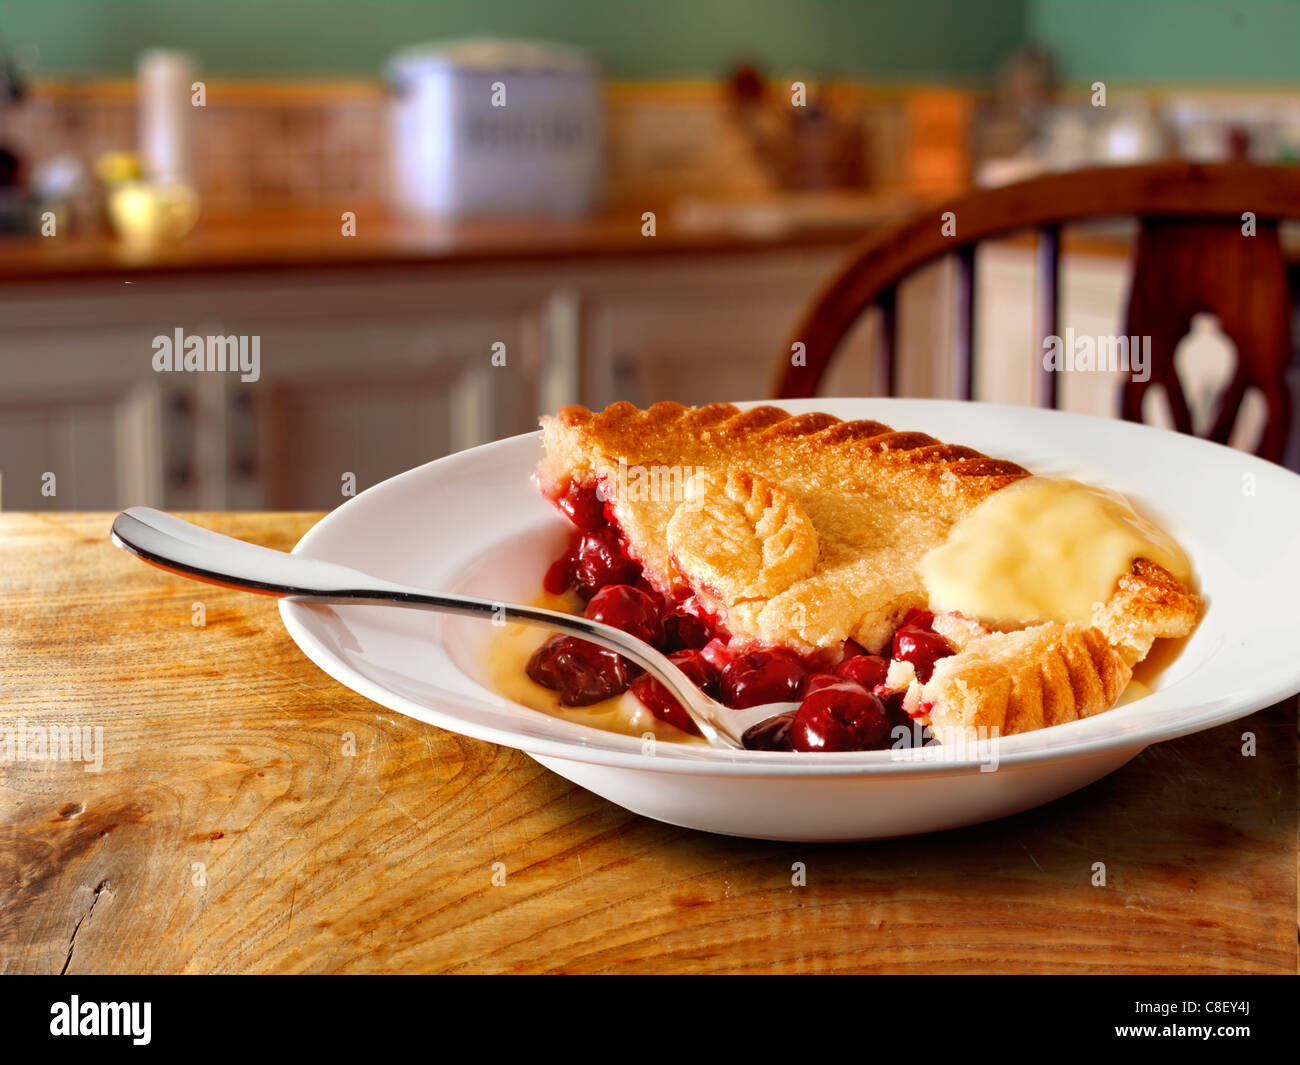 Traditional British cherry pie and custard pudding served hot in a bowl in a kitchen setting - Stock Image